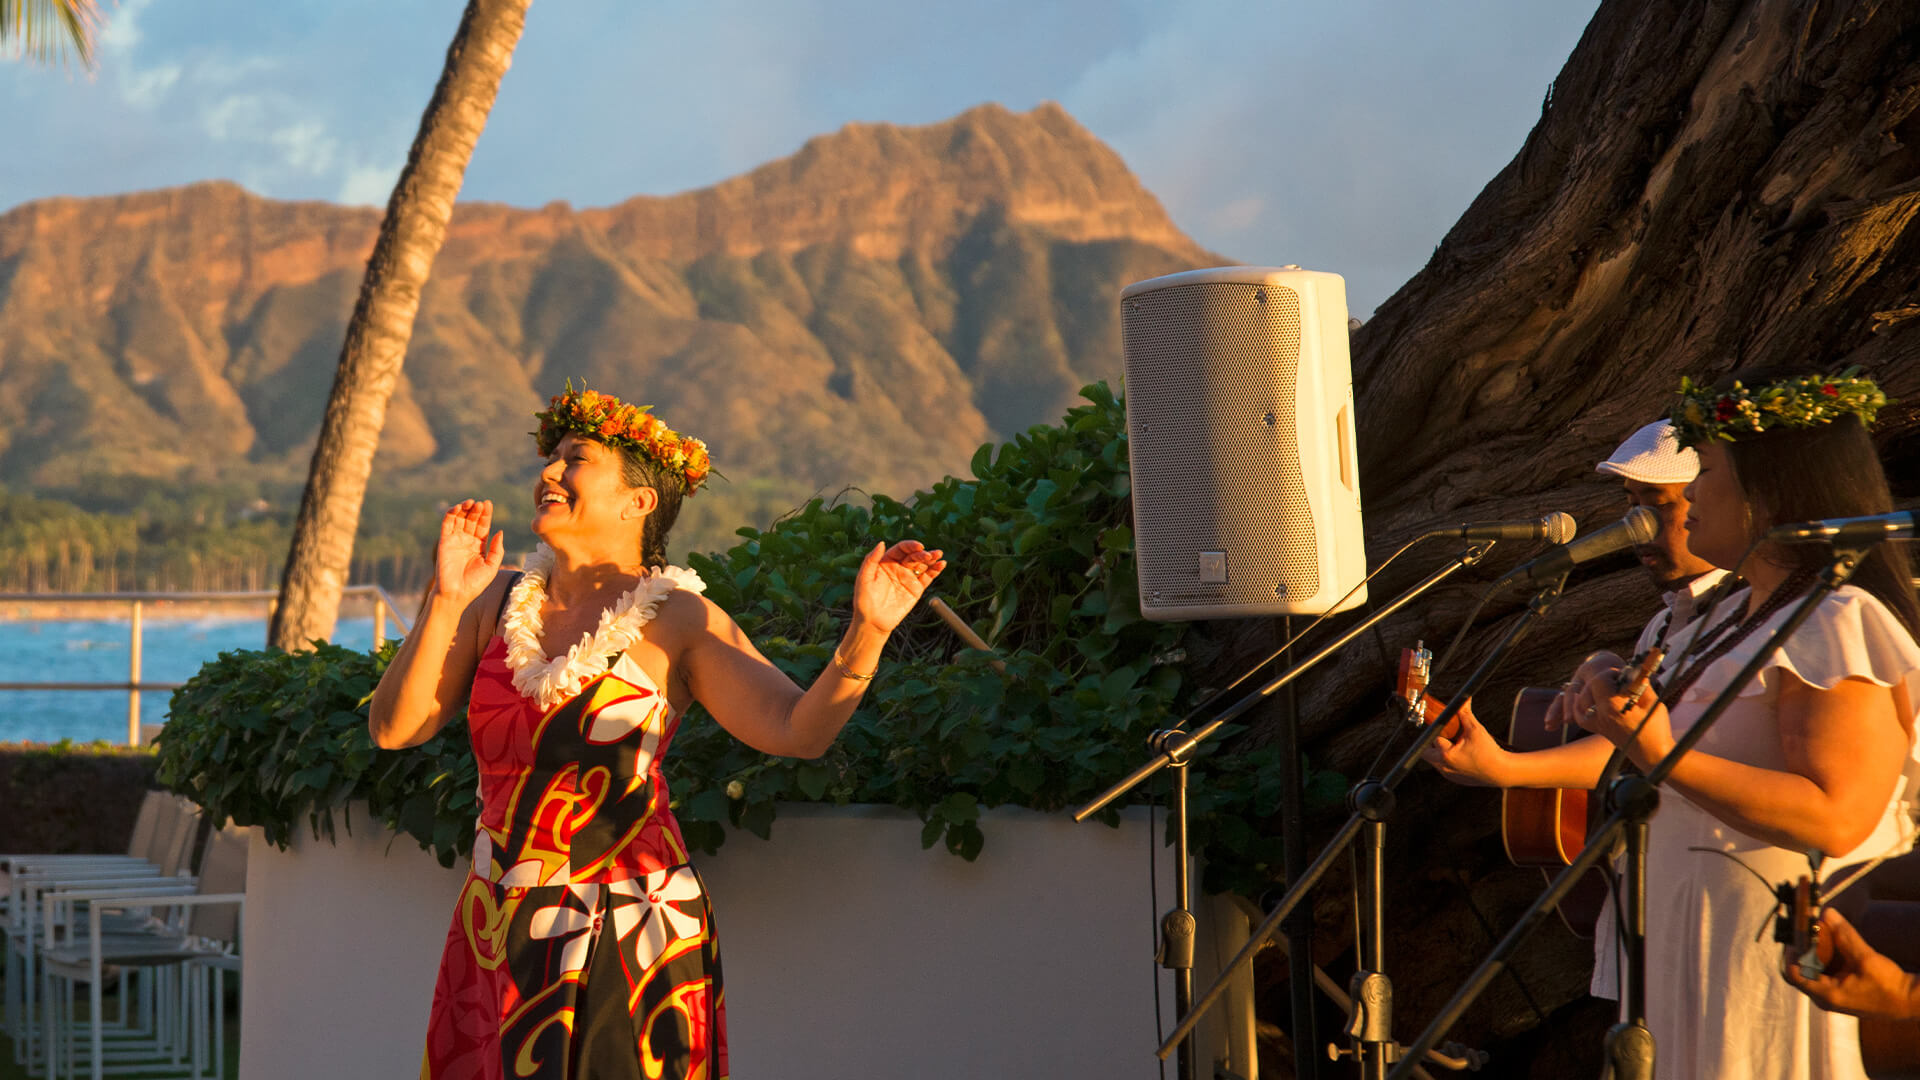 Live entertainment features Hawaiian music and hula